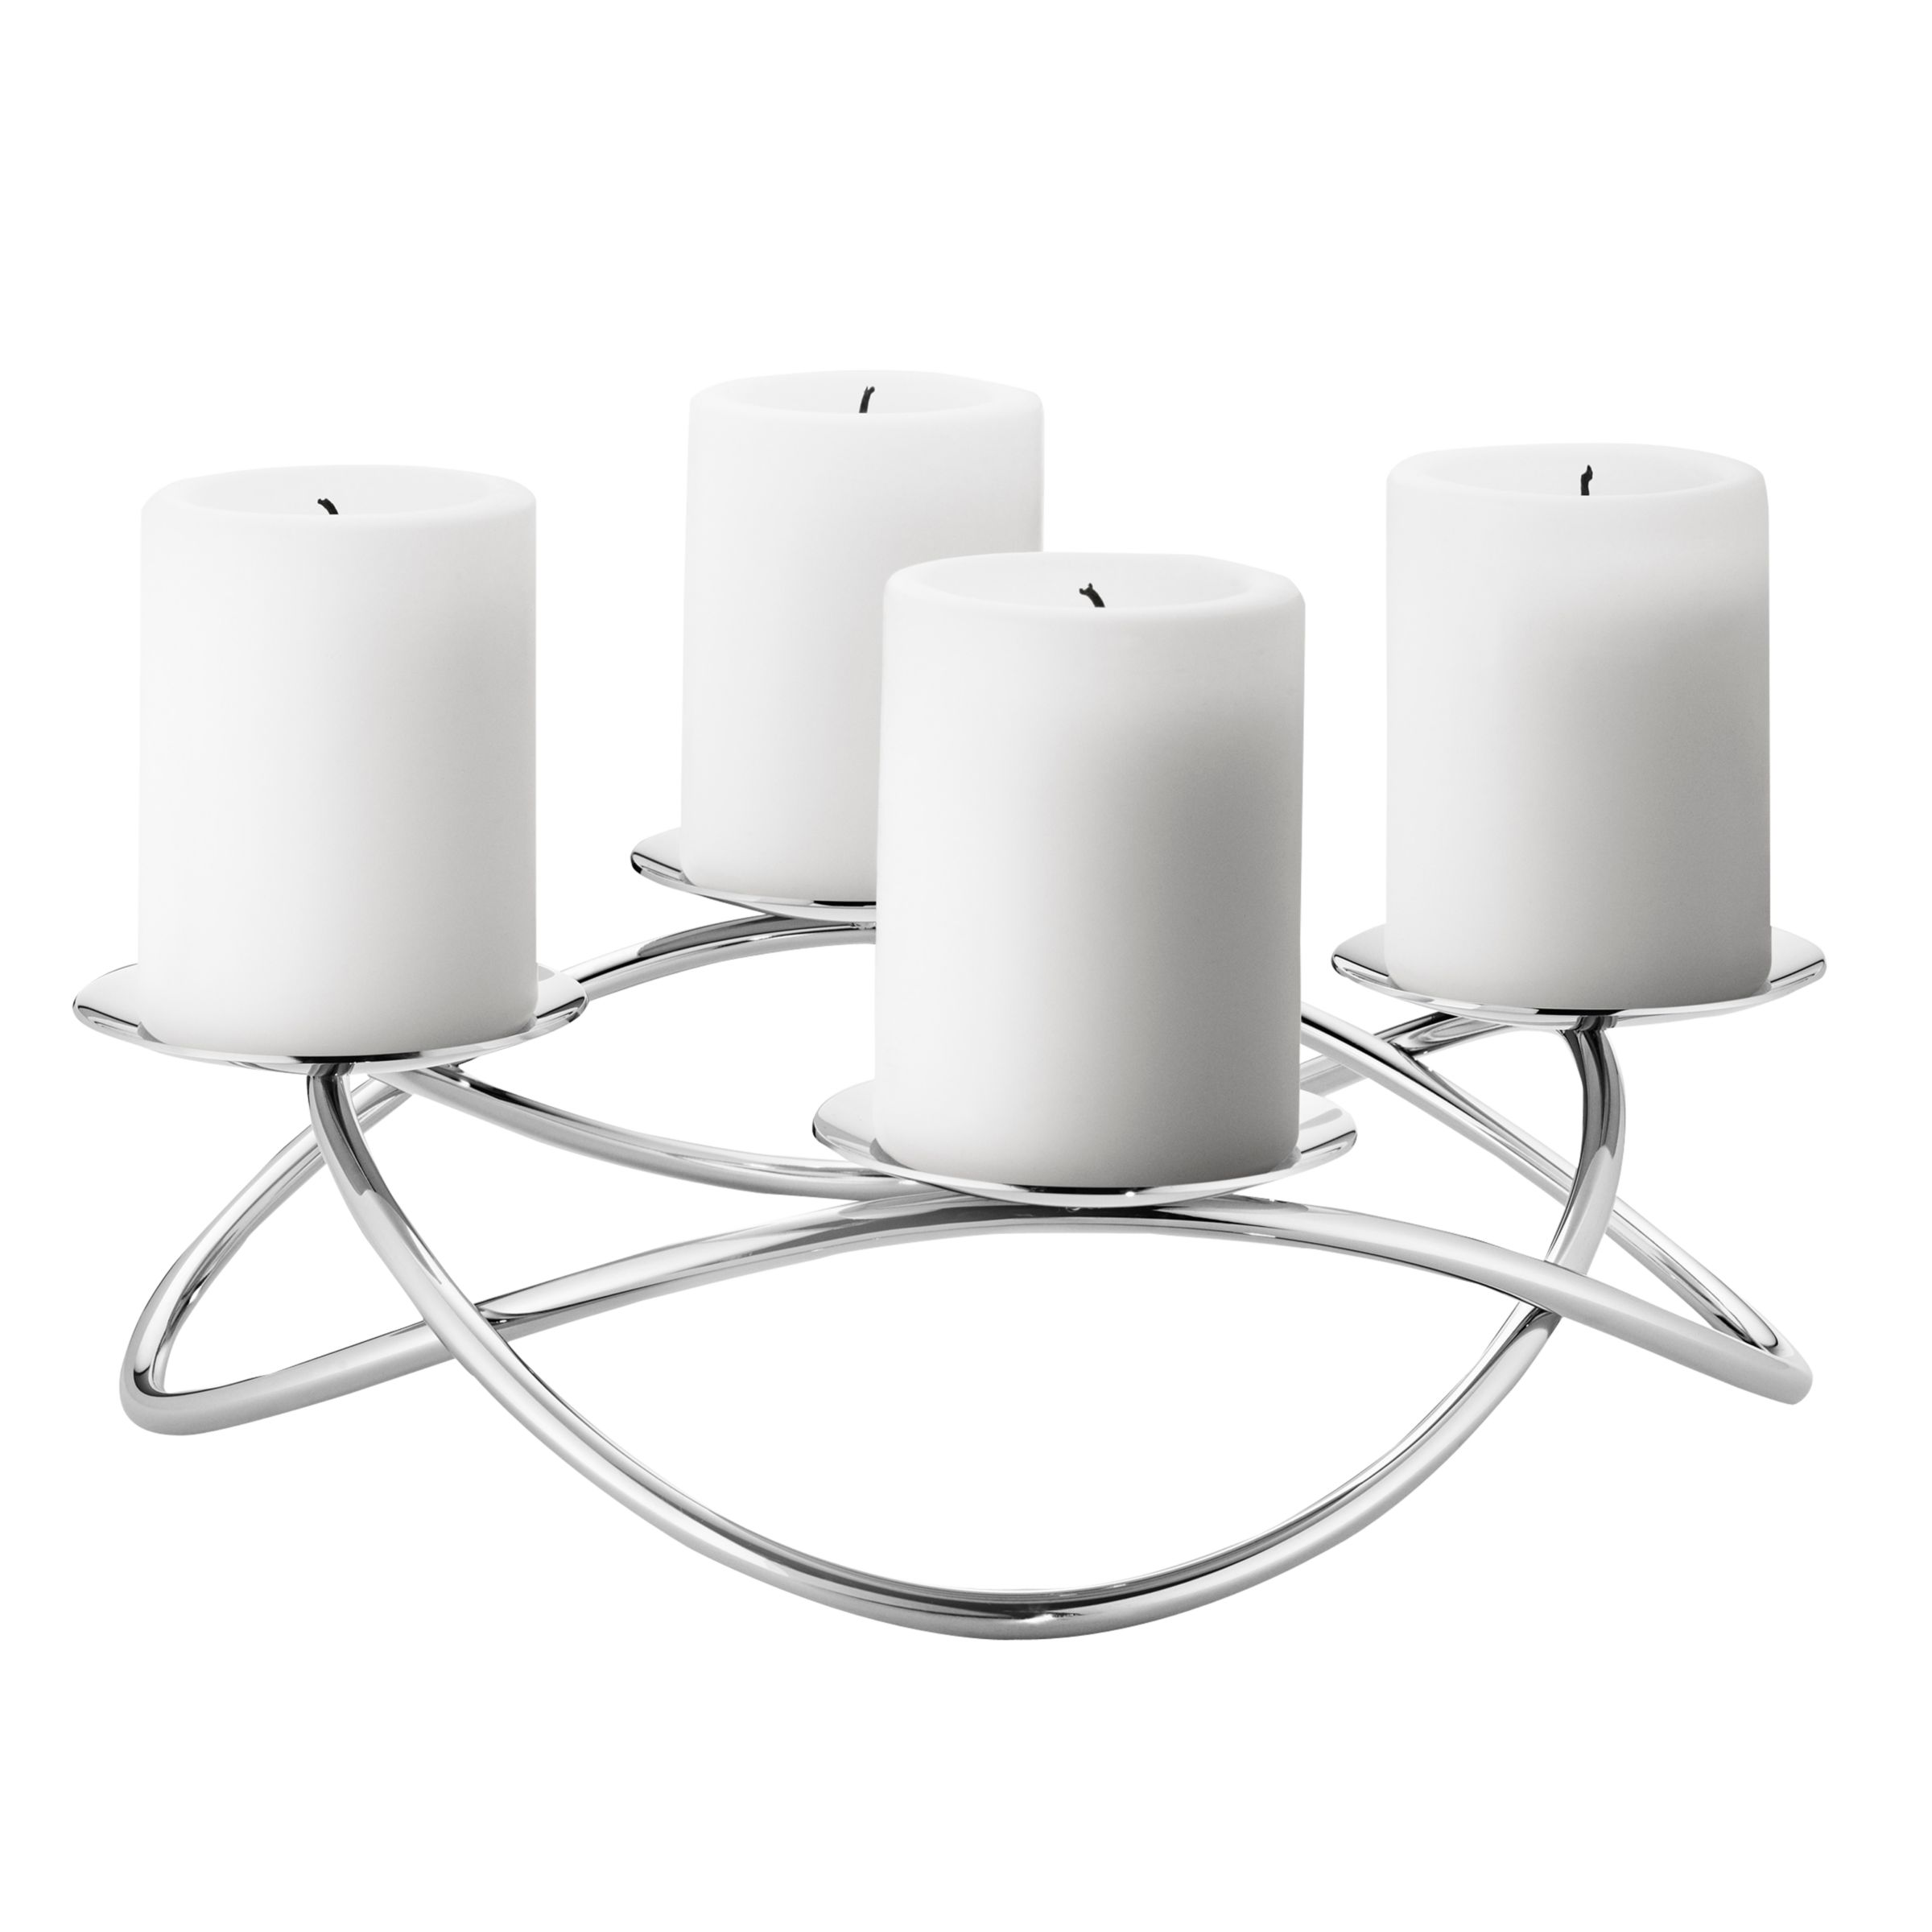 Georg Jensen Georg Jensen Season Grand Candle Stick Holder, Steel